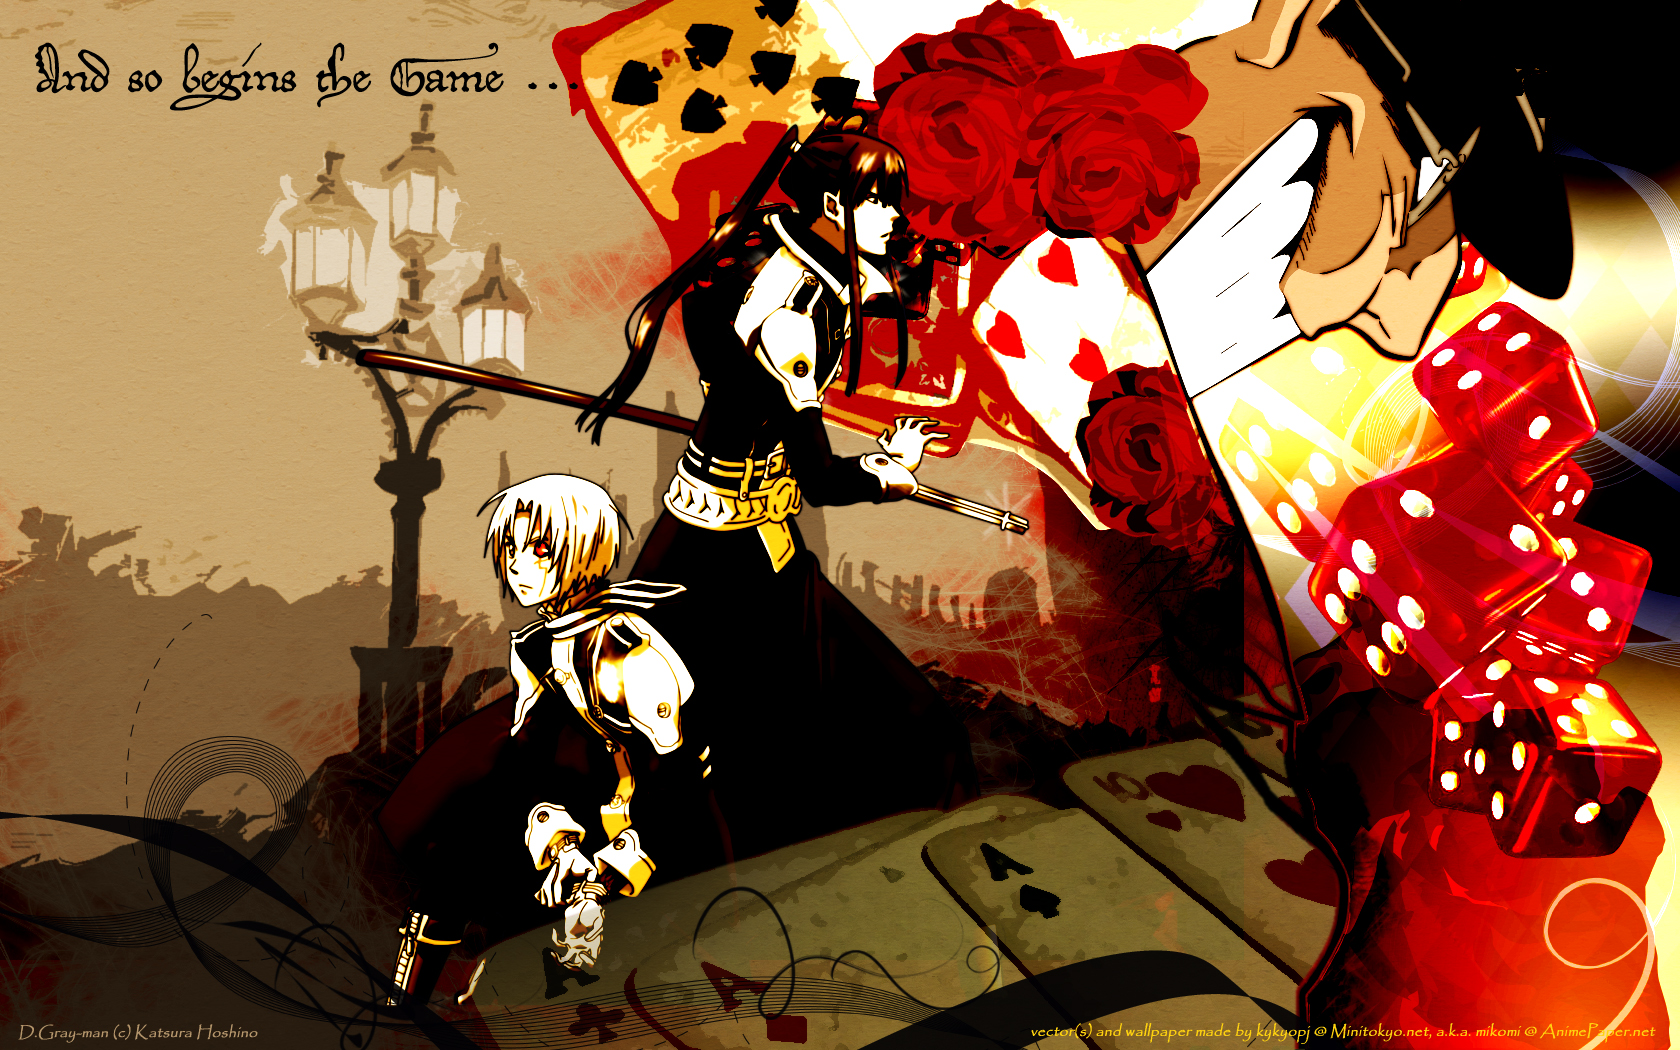 D gray man d gray man wallpaper 25484118 fanpop - D gray man images ...